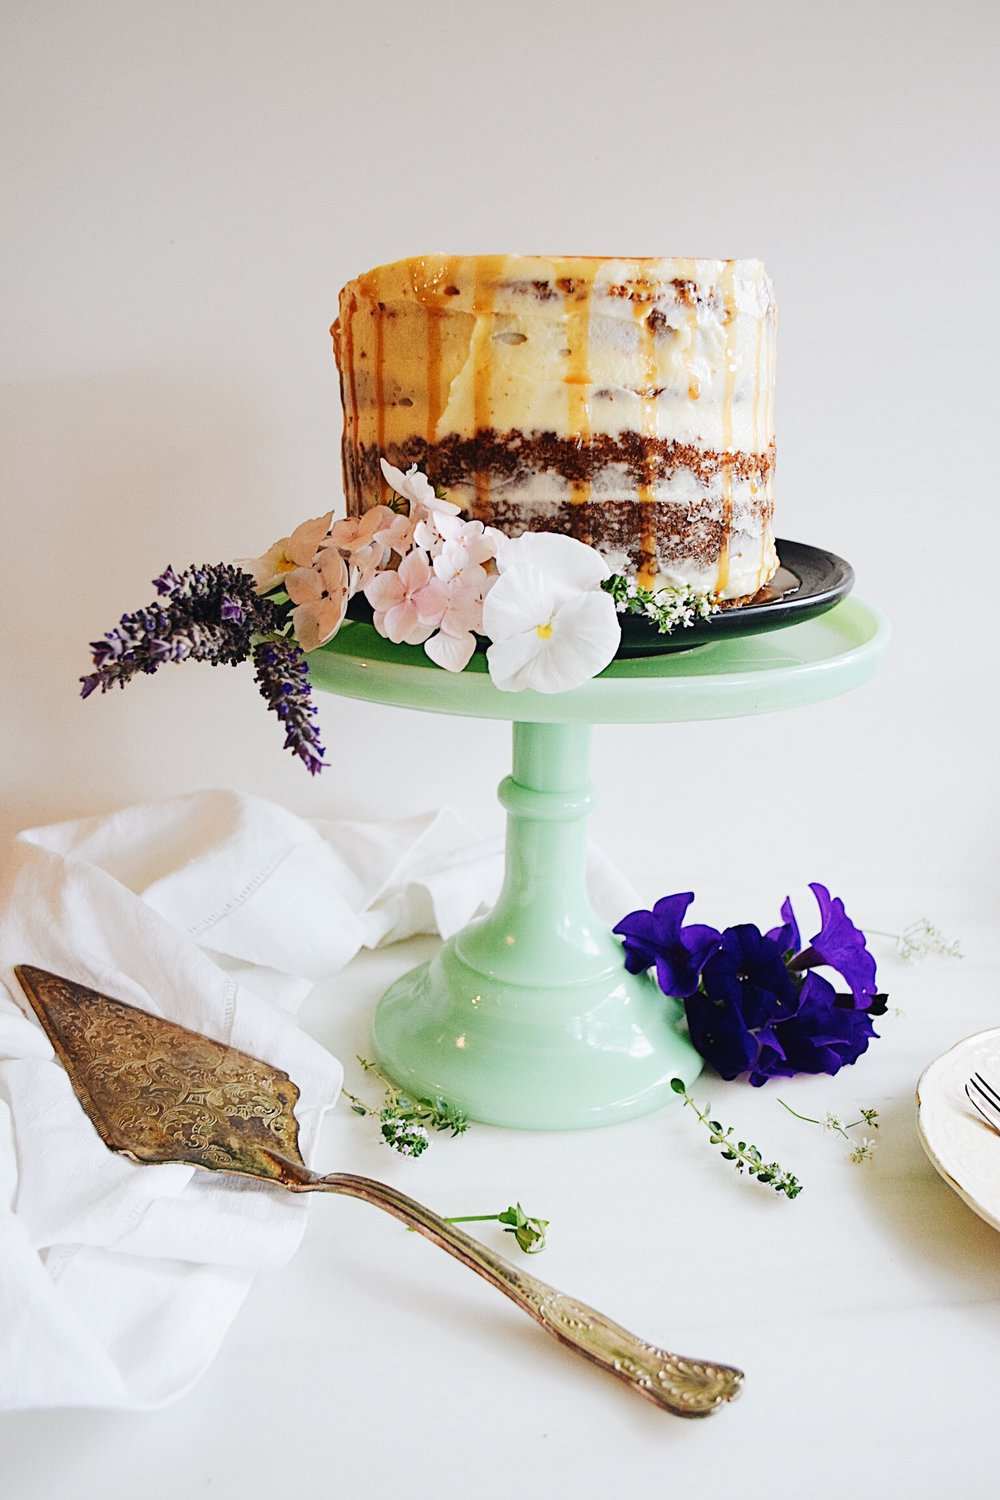 Naked cake with caramel drips